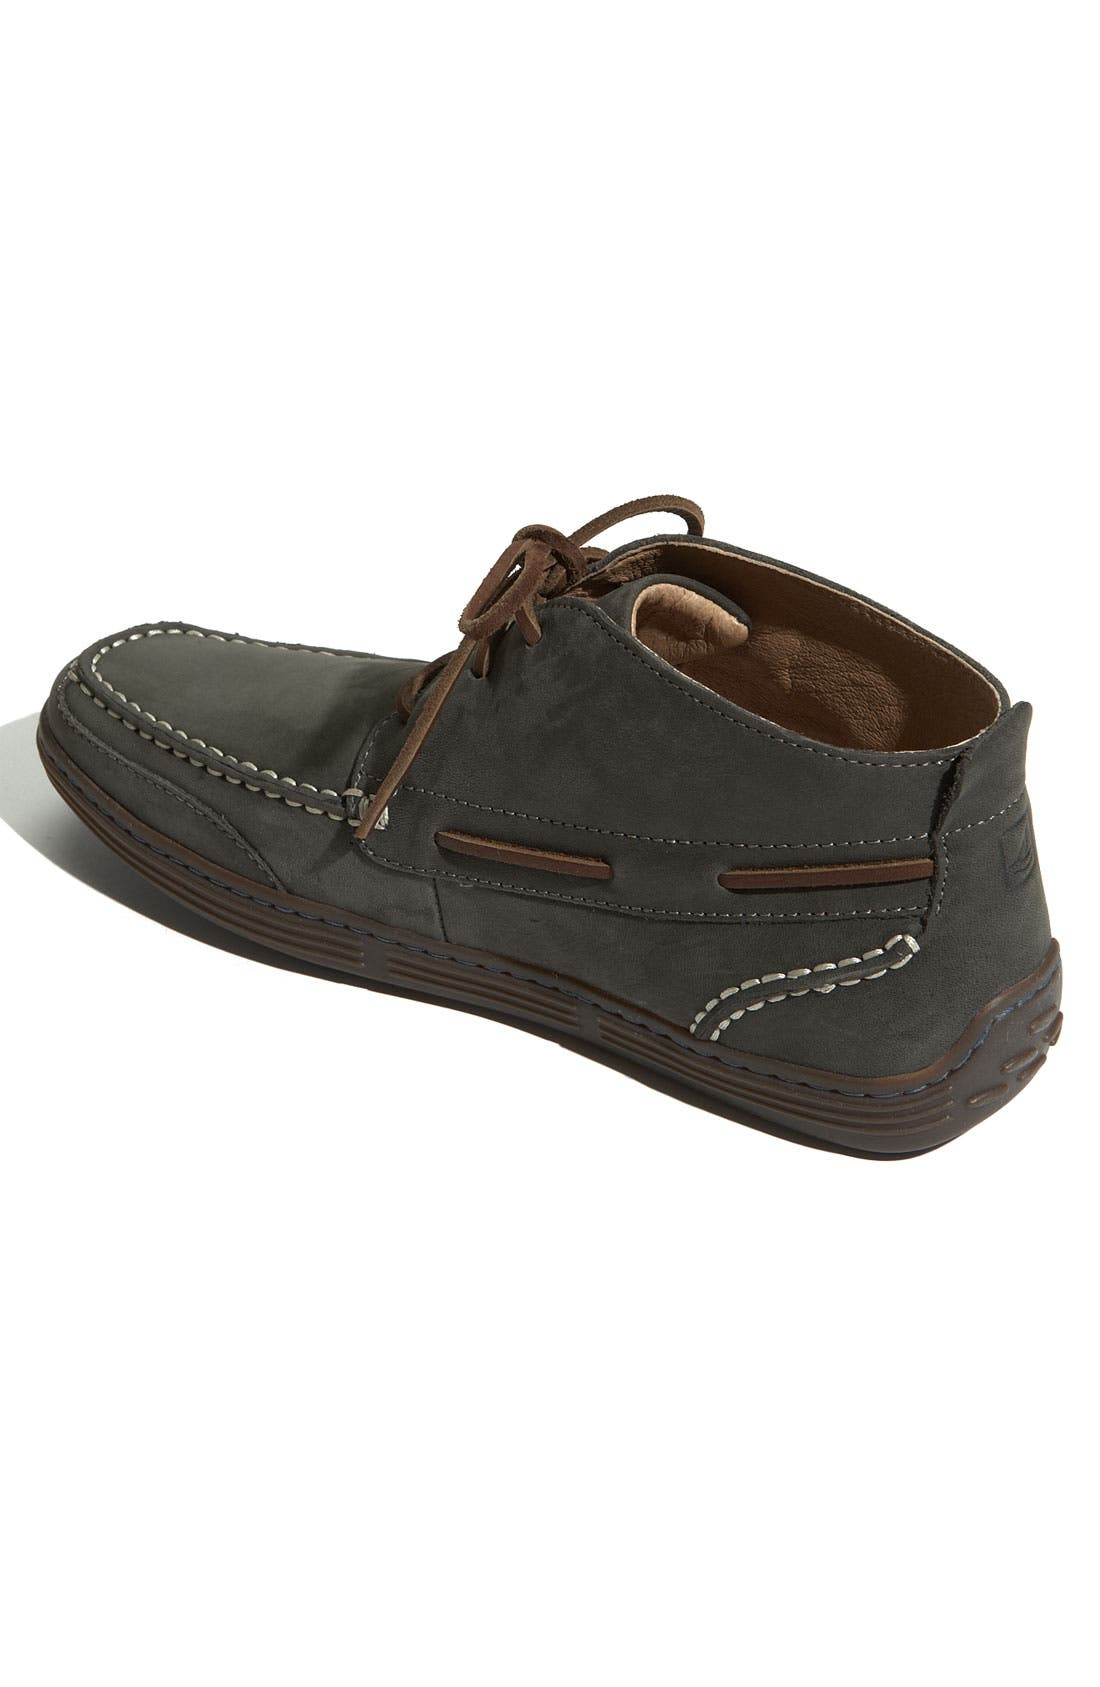 Alternate Image 2  - Sperry Top-Sider® 'Harbor' Chukka Boot